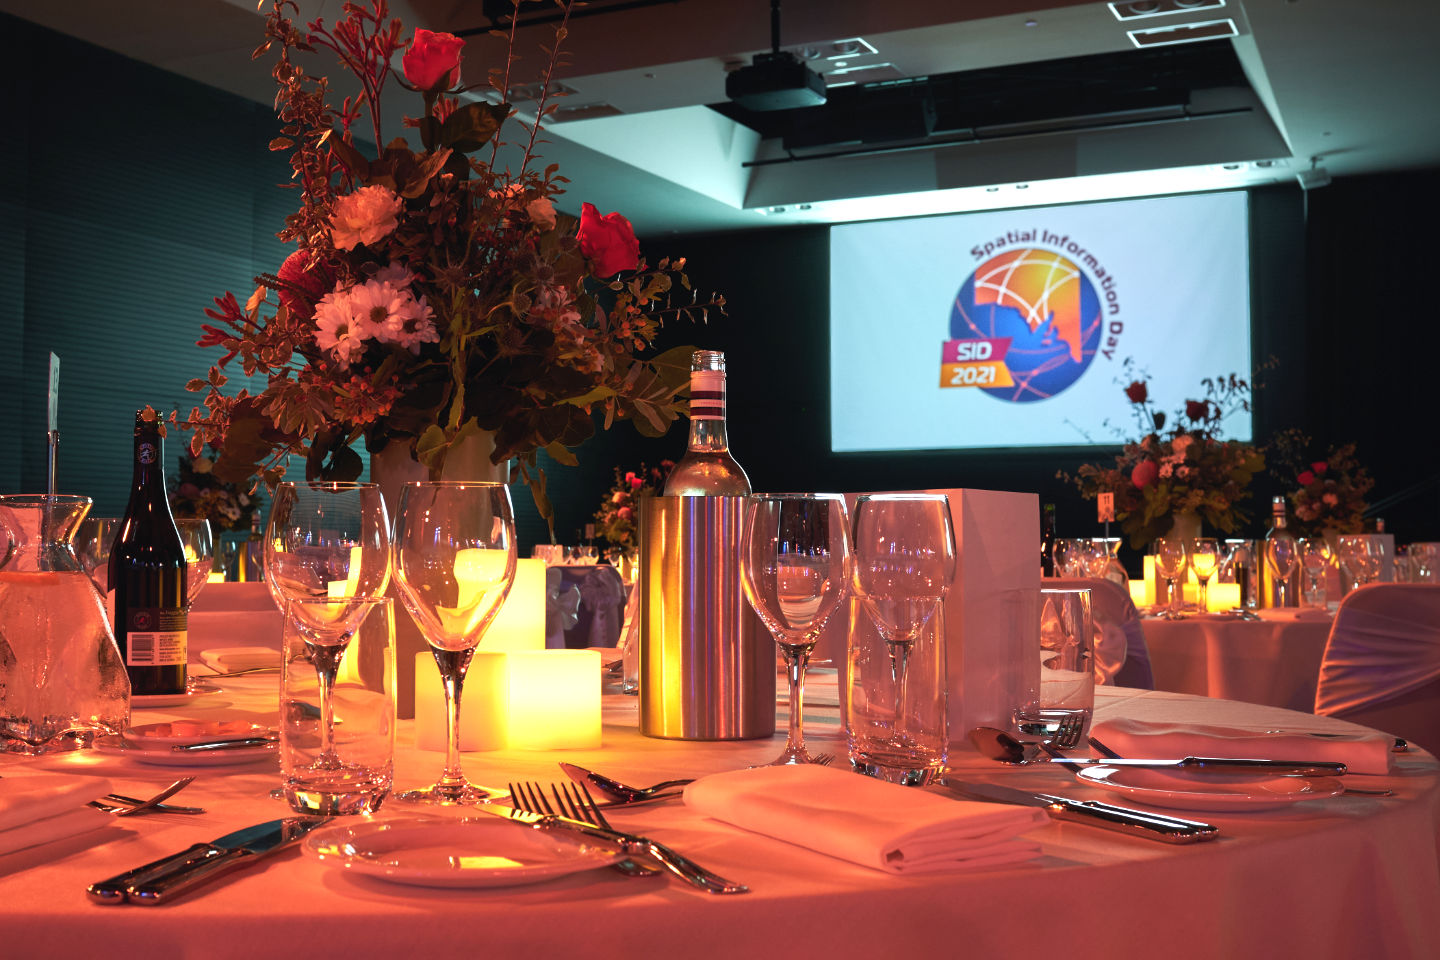 Photo of the dinner venue with table decorations